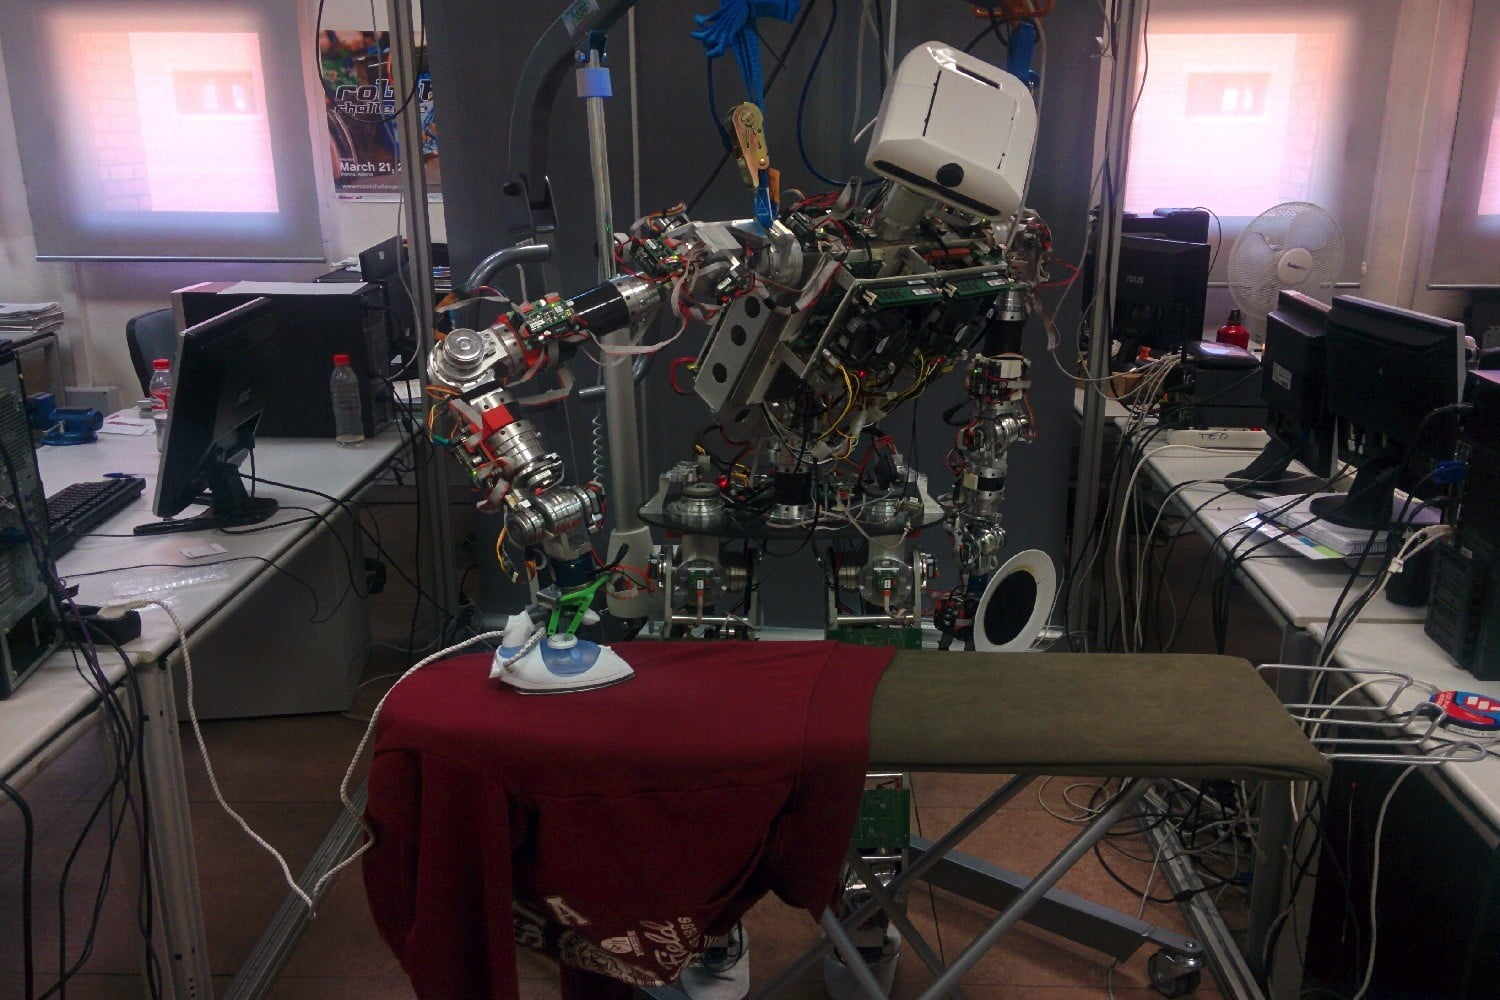 Ironing robot is here to steal the job you never wanted anyway